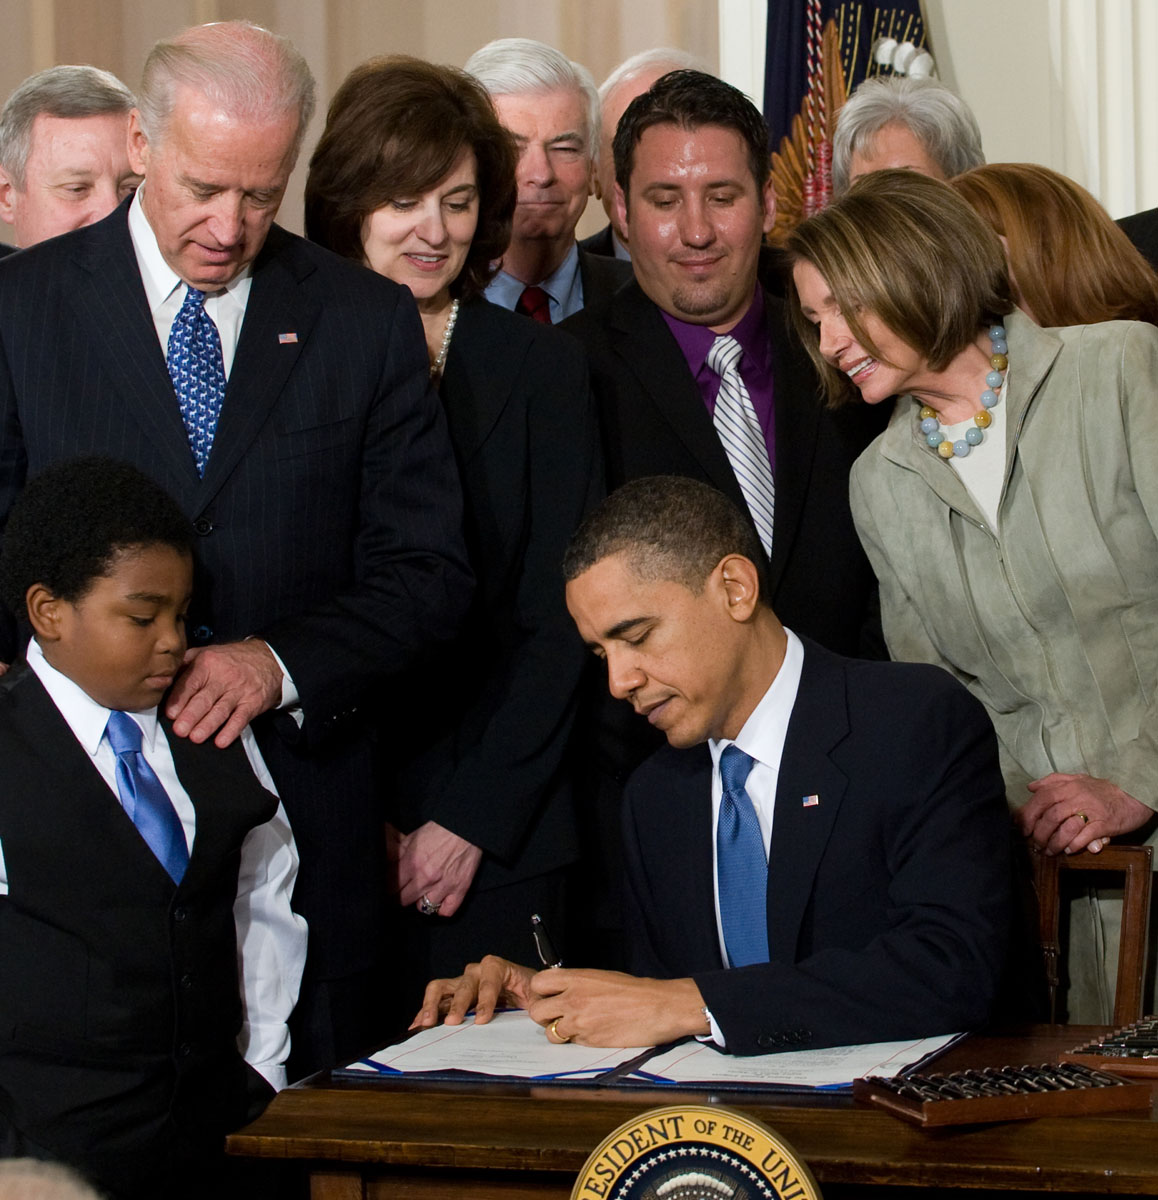 March 23, 2010: US President Barack Obama, surrounded by lawmakers and guests, signs the healthcare insurance reform legislation during a ceremony in the East Room of the White House in Washington on March 23, 2010. Obama signed into law his historic health care reform, enacting the most sweeping social legislation in decades which will ensure coverage for almost all Americans. (Saul Loeb/AFP/Getty Images)